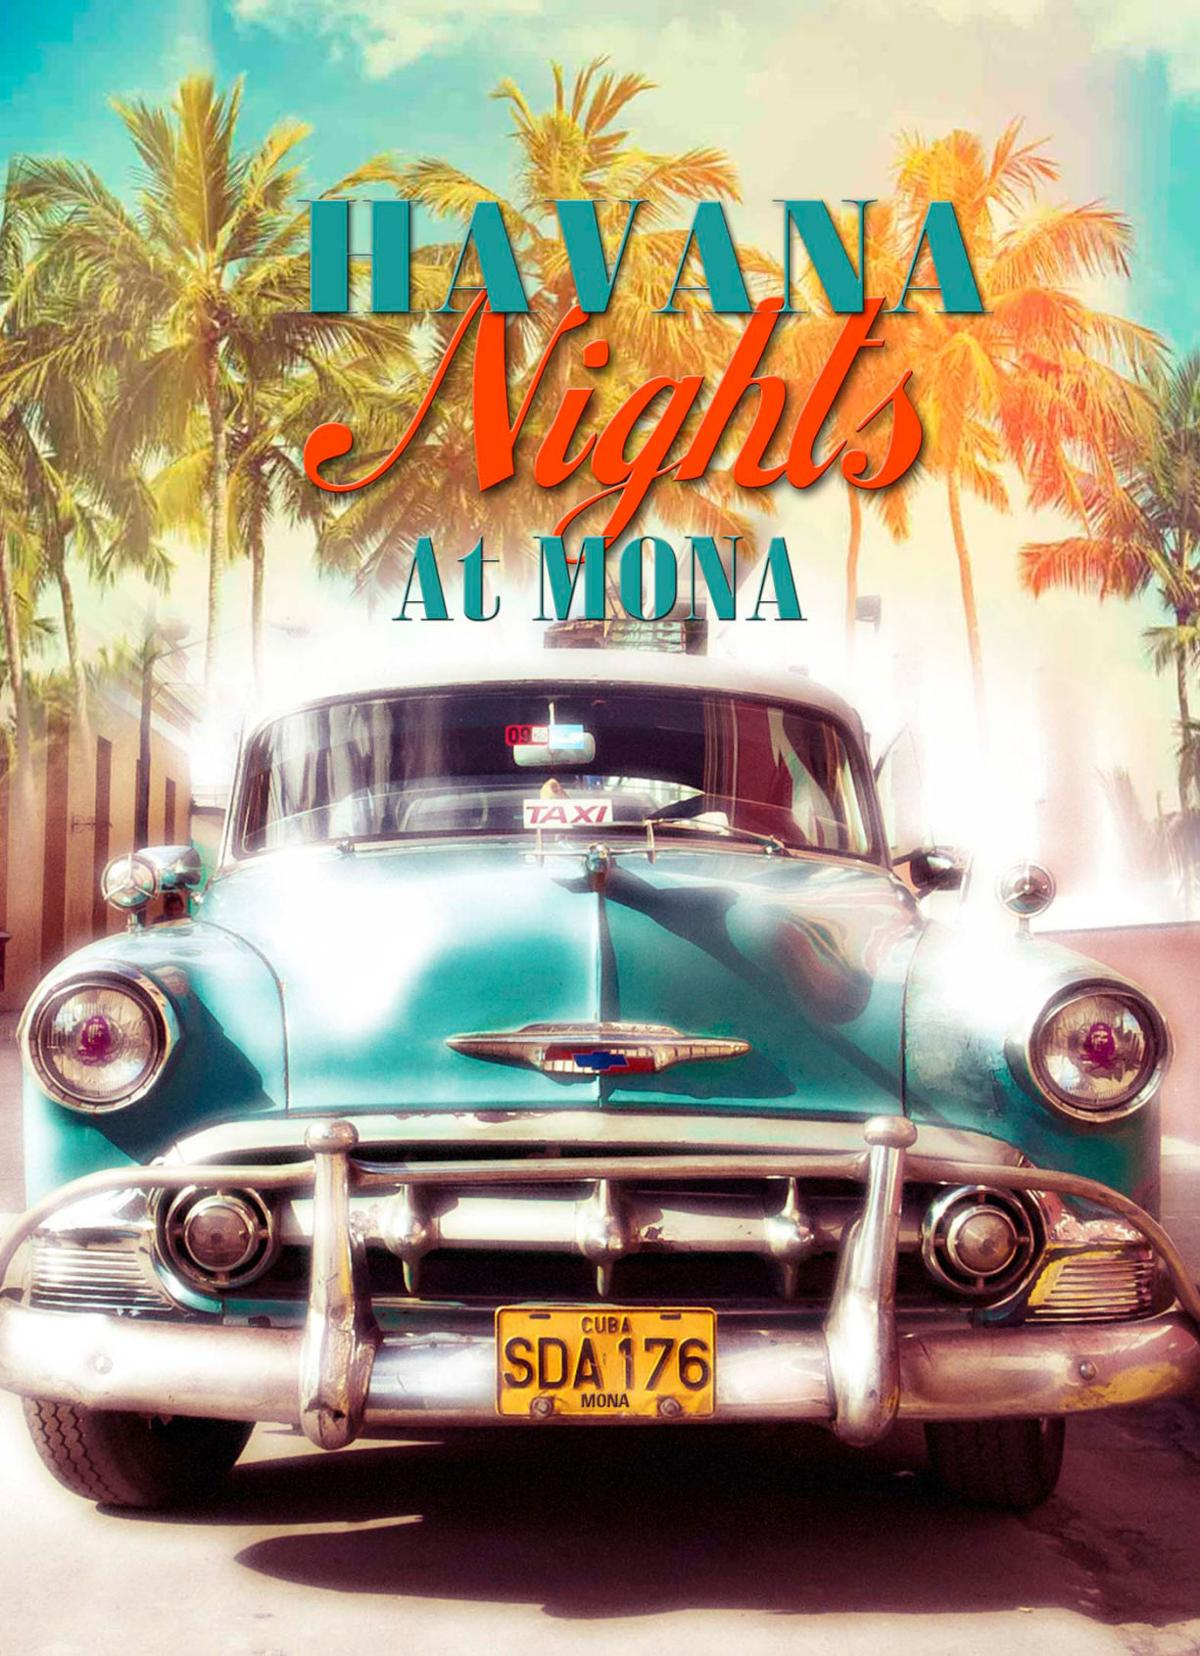 Dance Night Away Cuban Style Mona Presents Havana